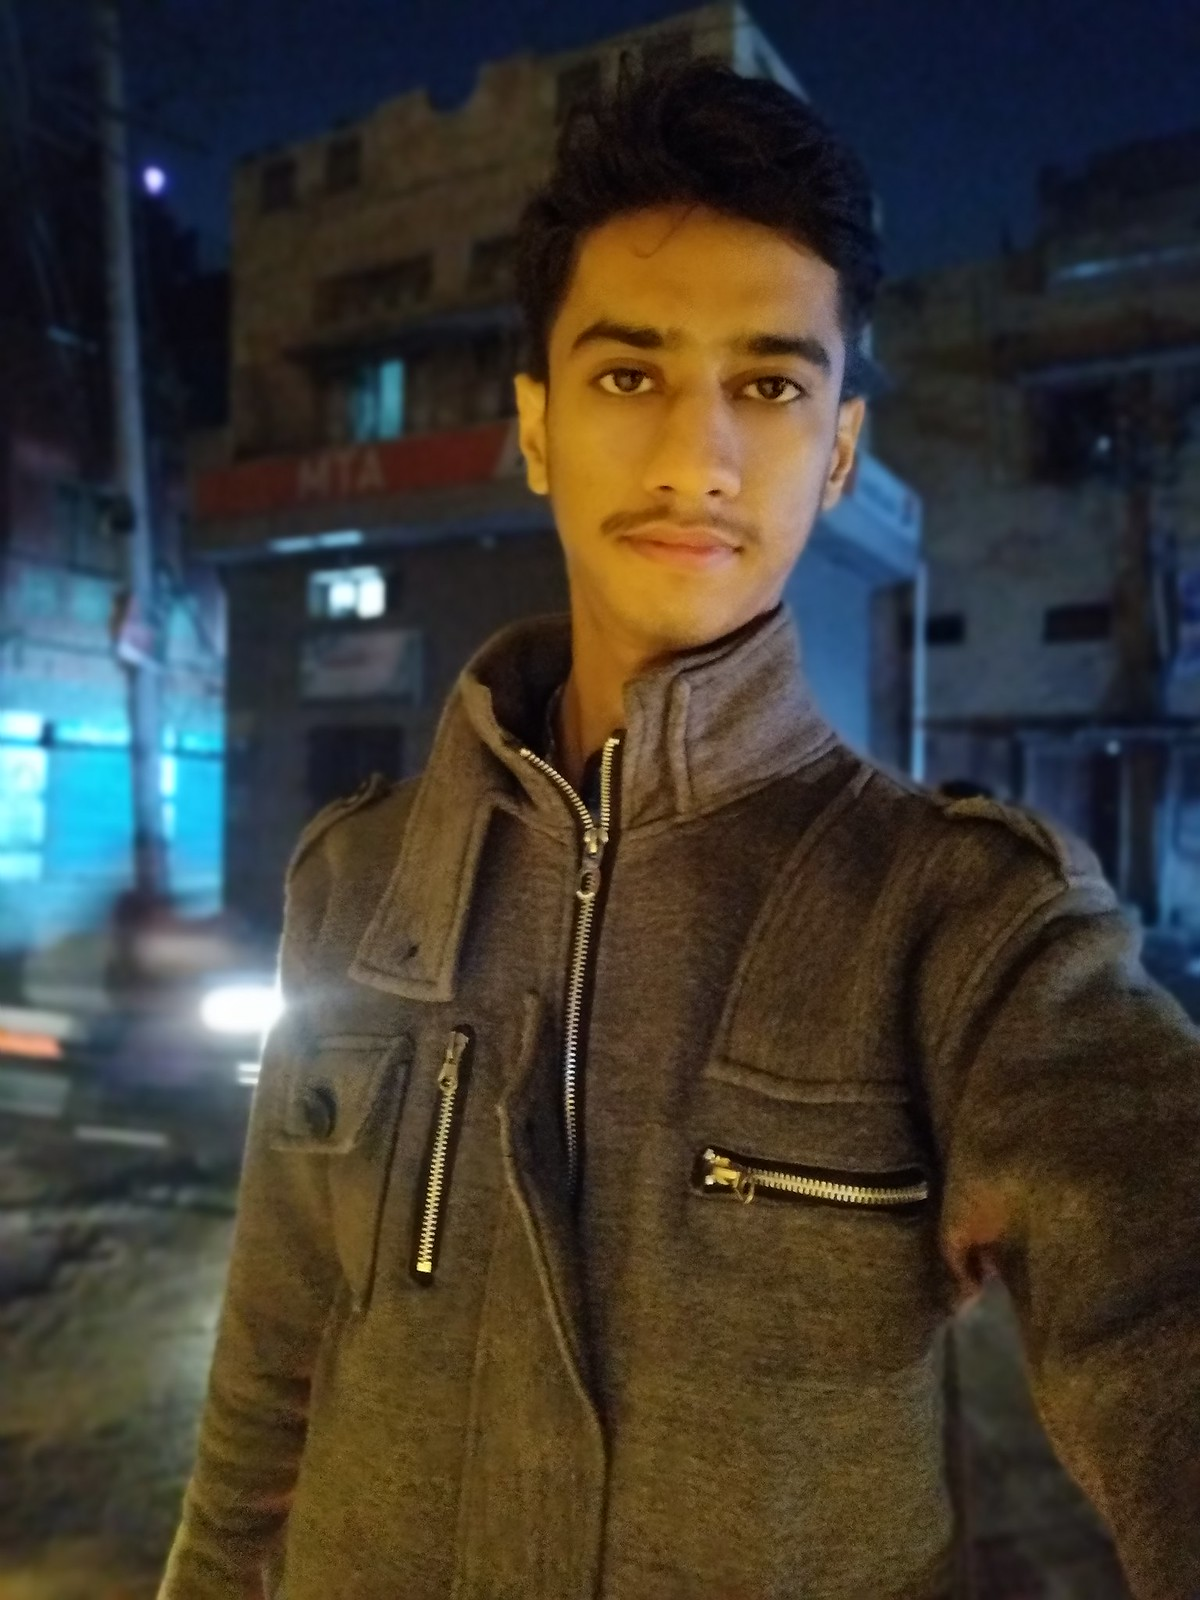 Selfie at night with Vivo Y95